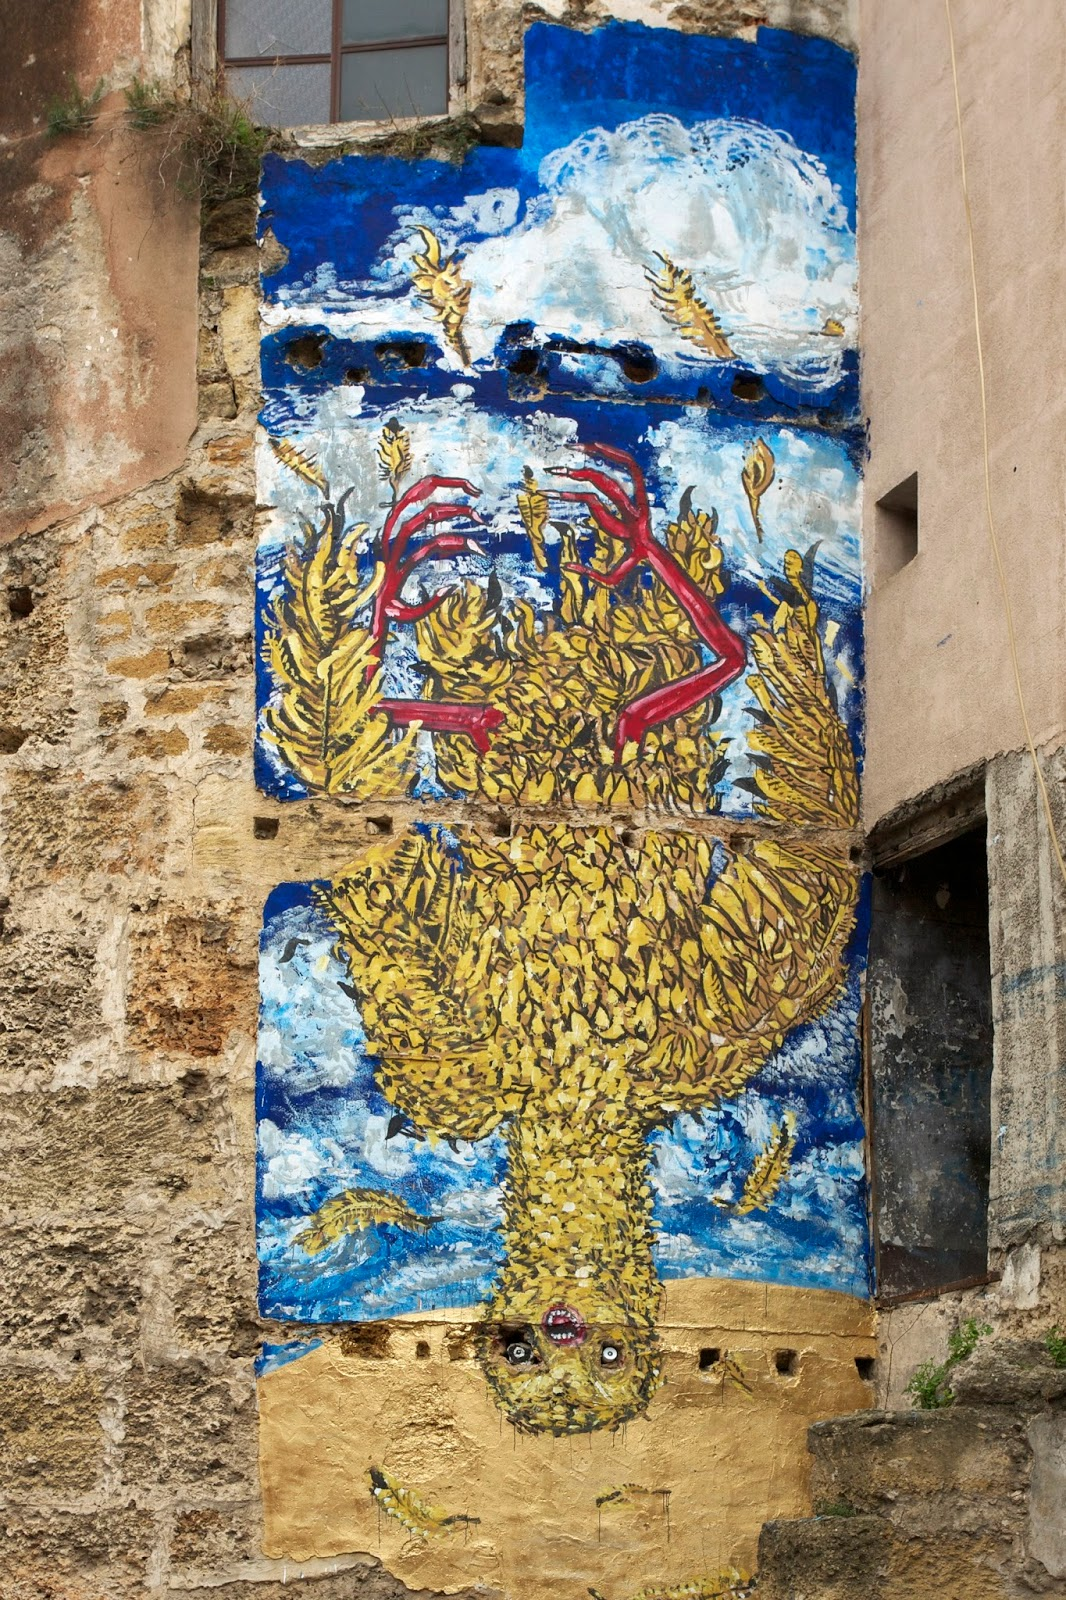 emajons-new-mural-in-vucciria-and-kalsa-palermo-03